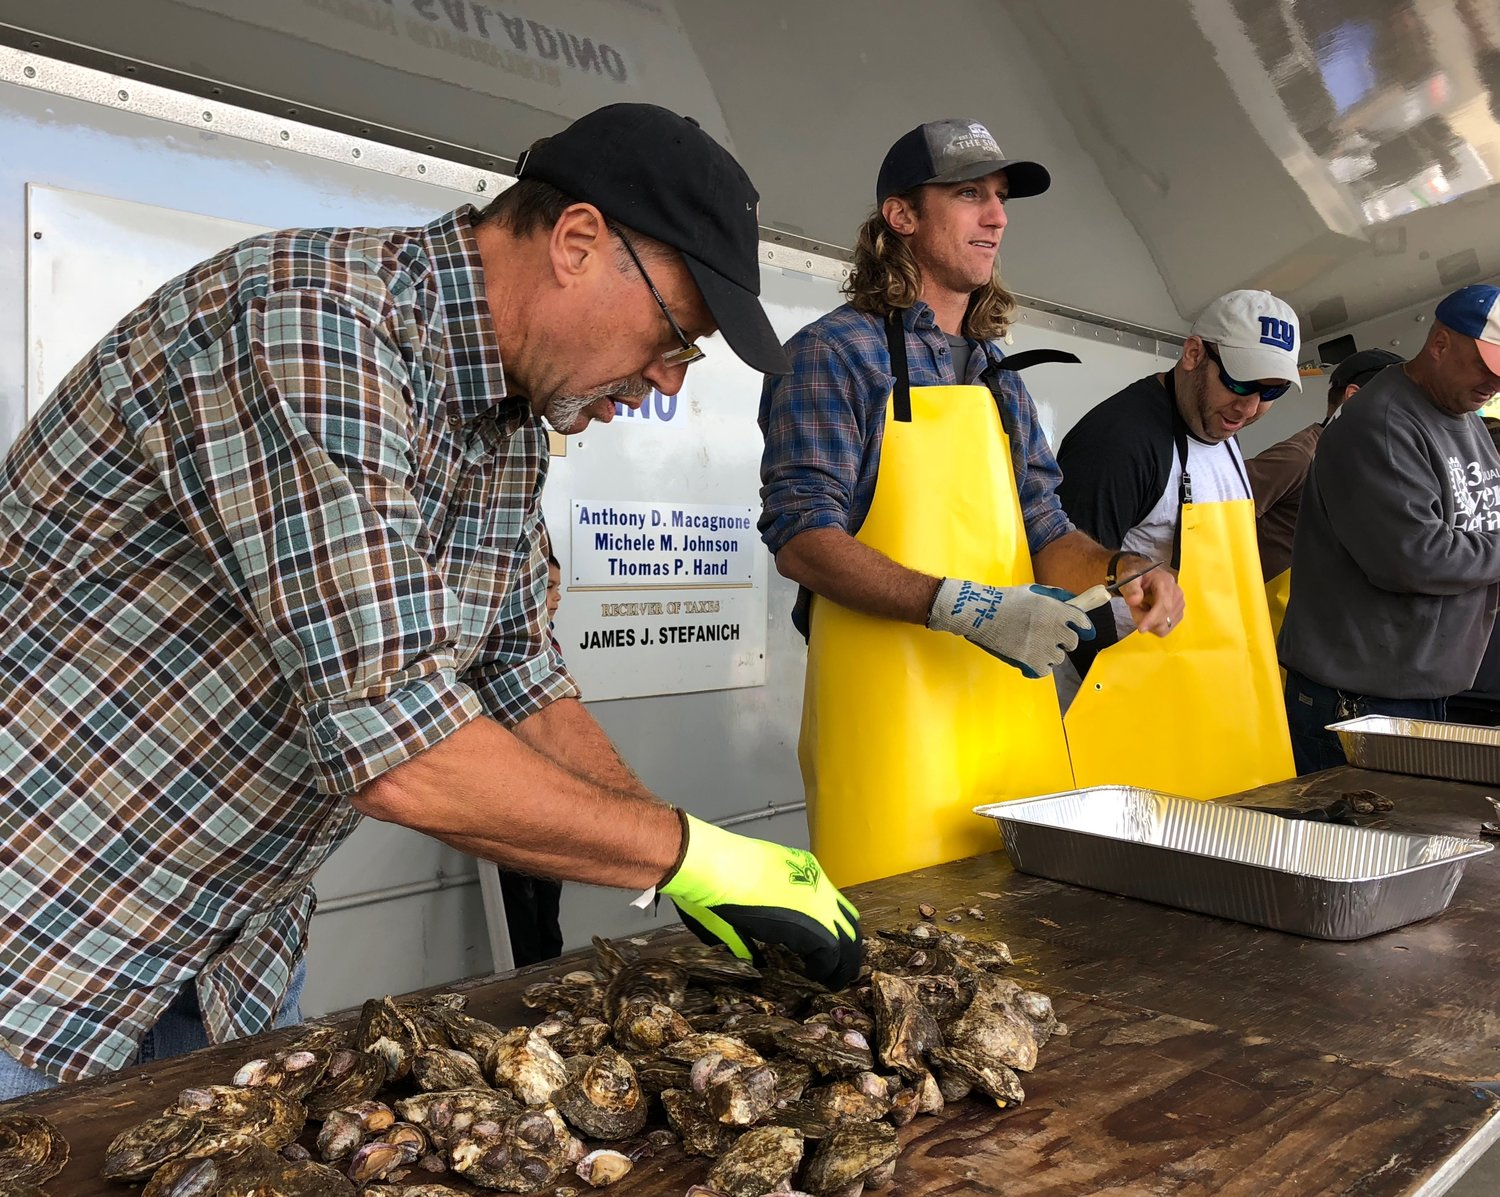 Four shuckers took part in the 2018 oyster shucking contest, coming from as close as Glen Cove to as far as Mattituck.